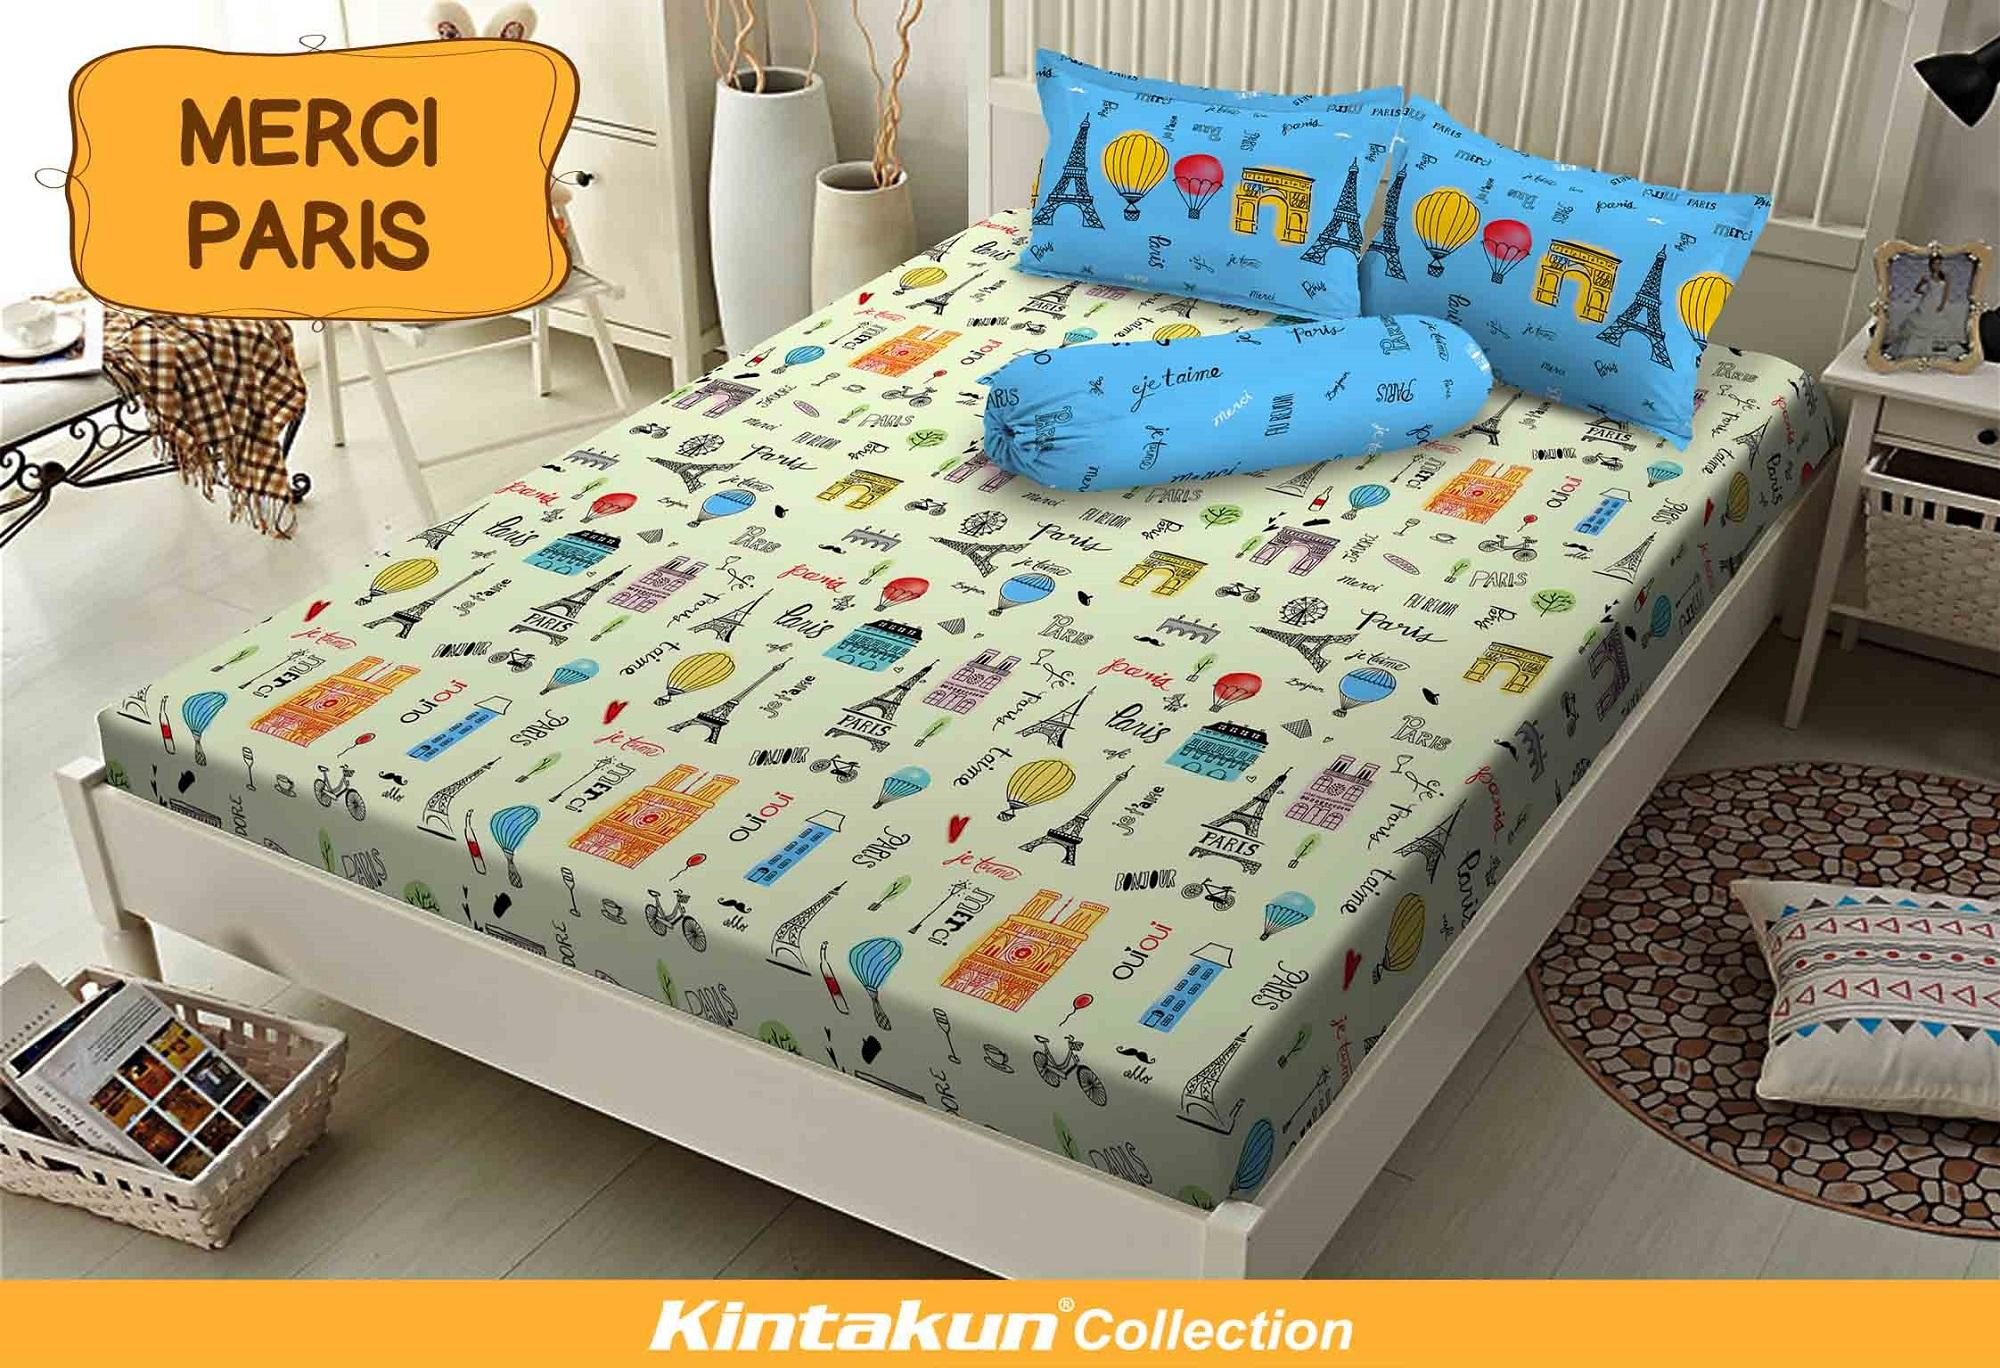 Kintakun Dluxe Sprei Single 120x200 cm - Merci Paris